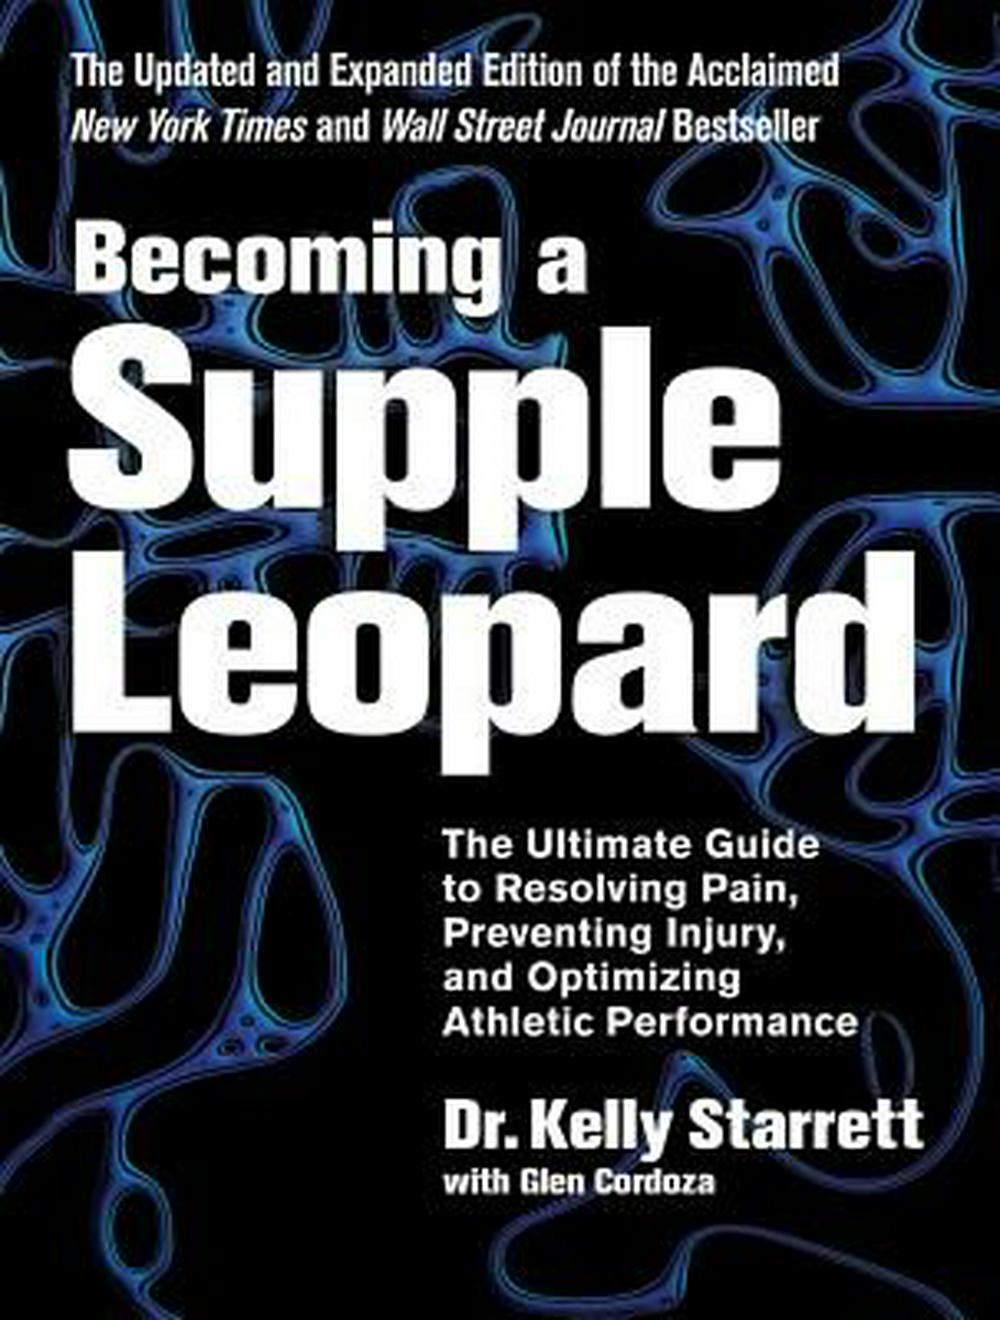 Becoming A Supple LeopardThe Ultimate Guide to Resolving Pain, Preventin...